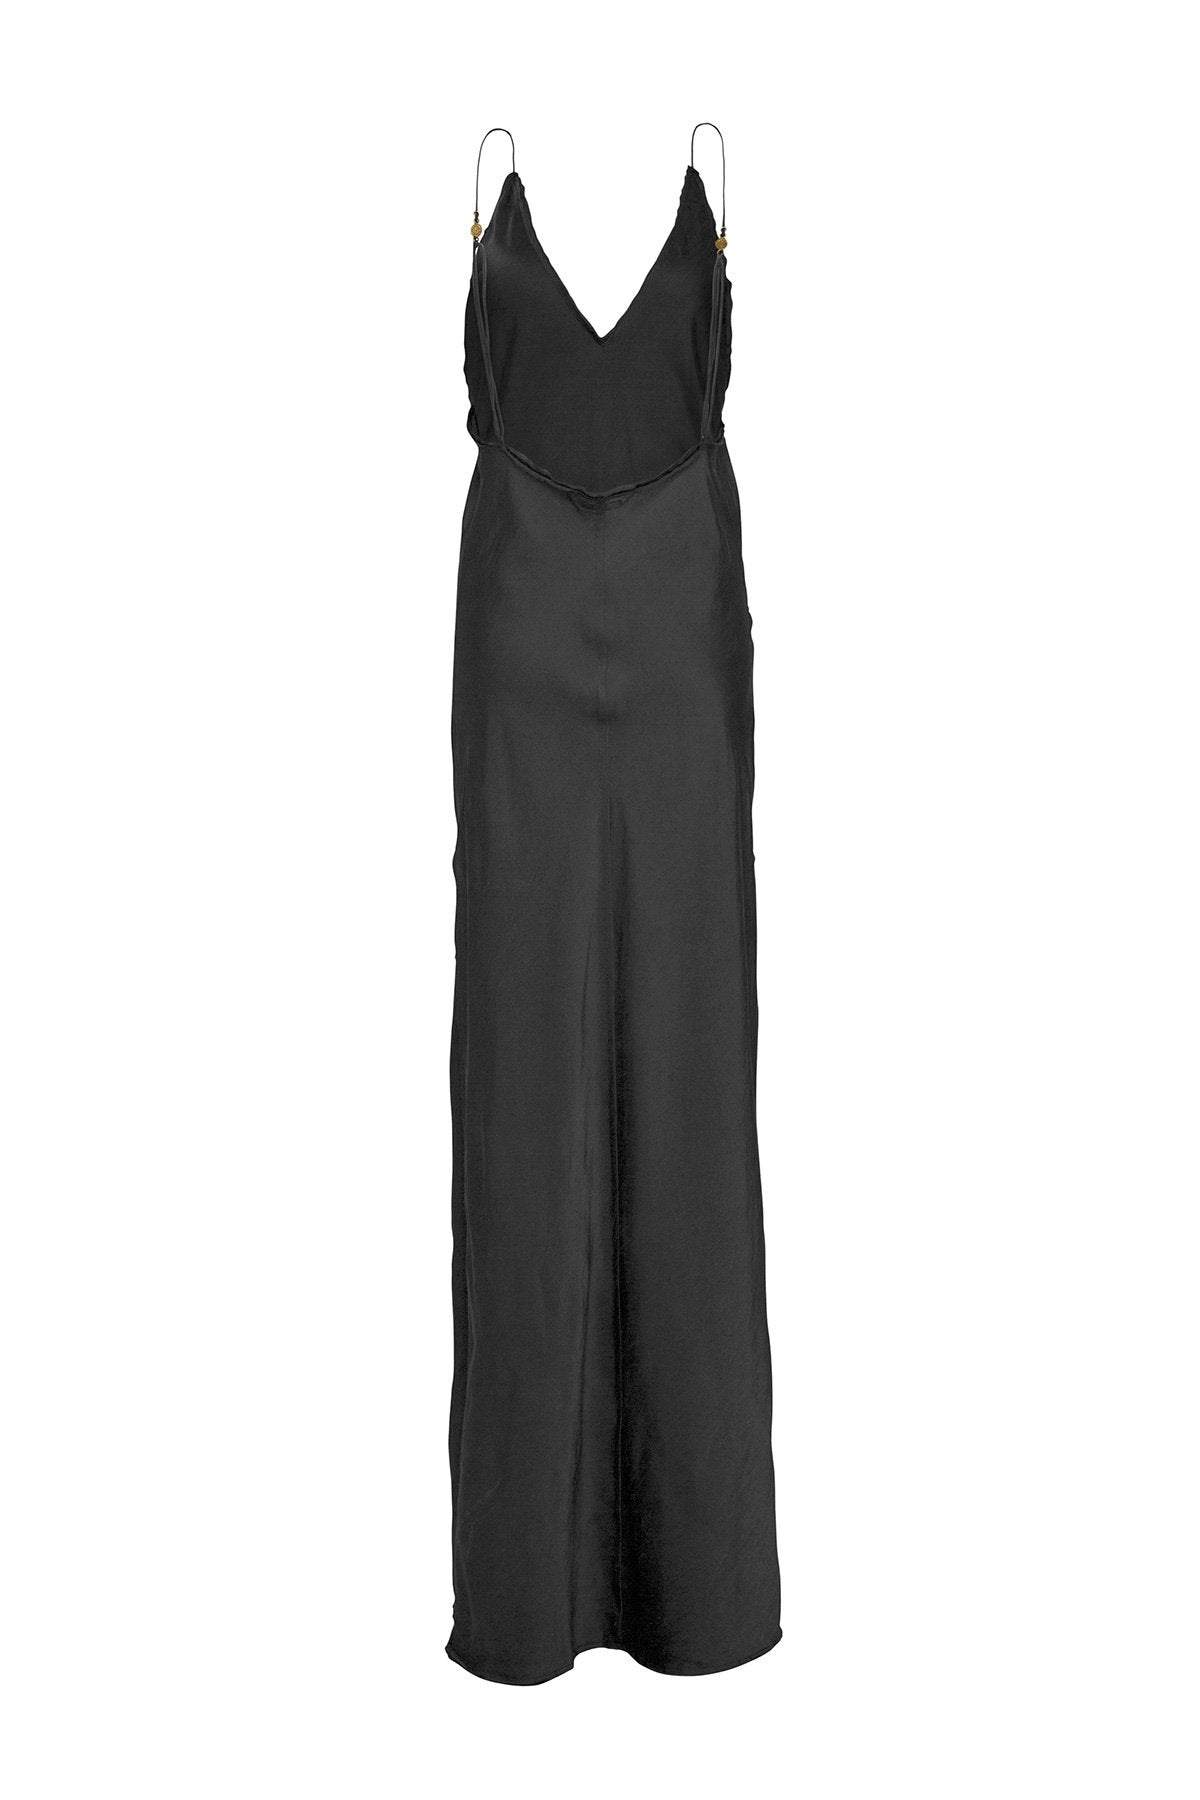 Sustainable Black Silk Maxi Dress